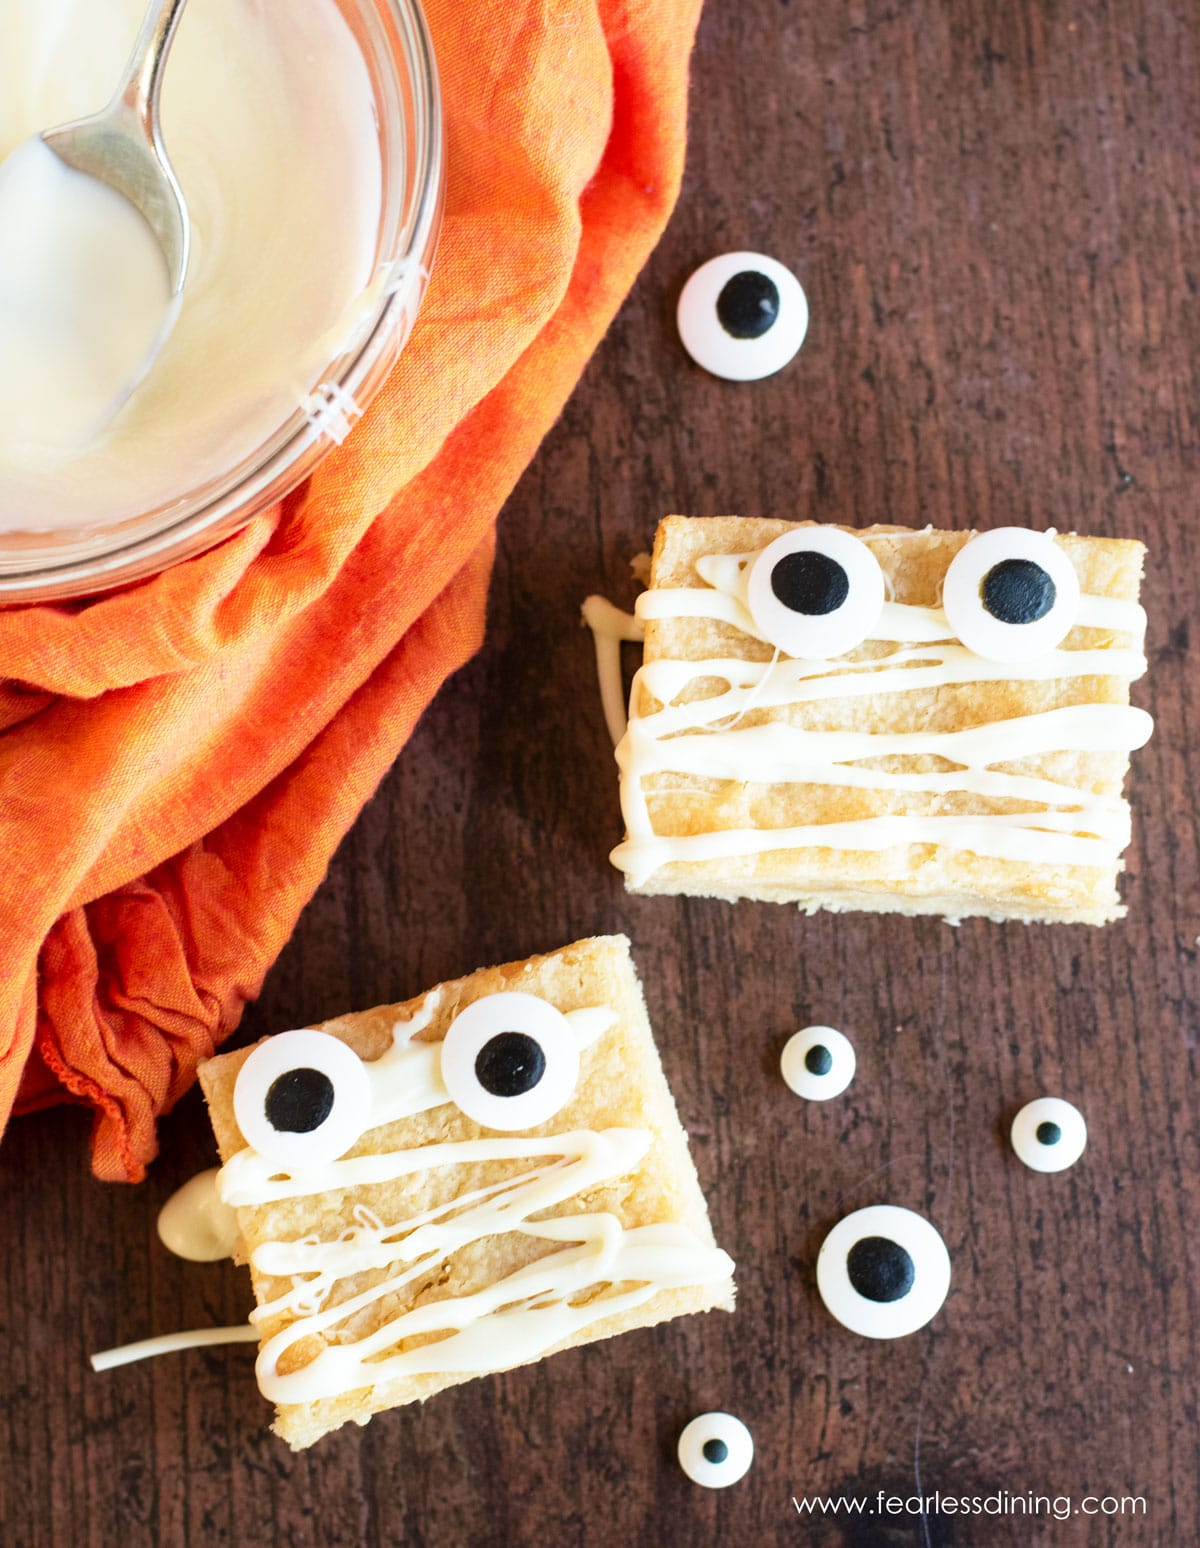 white chocolate brownies decorated with candy eyes for Halloween